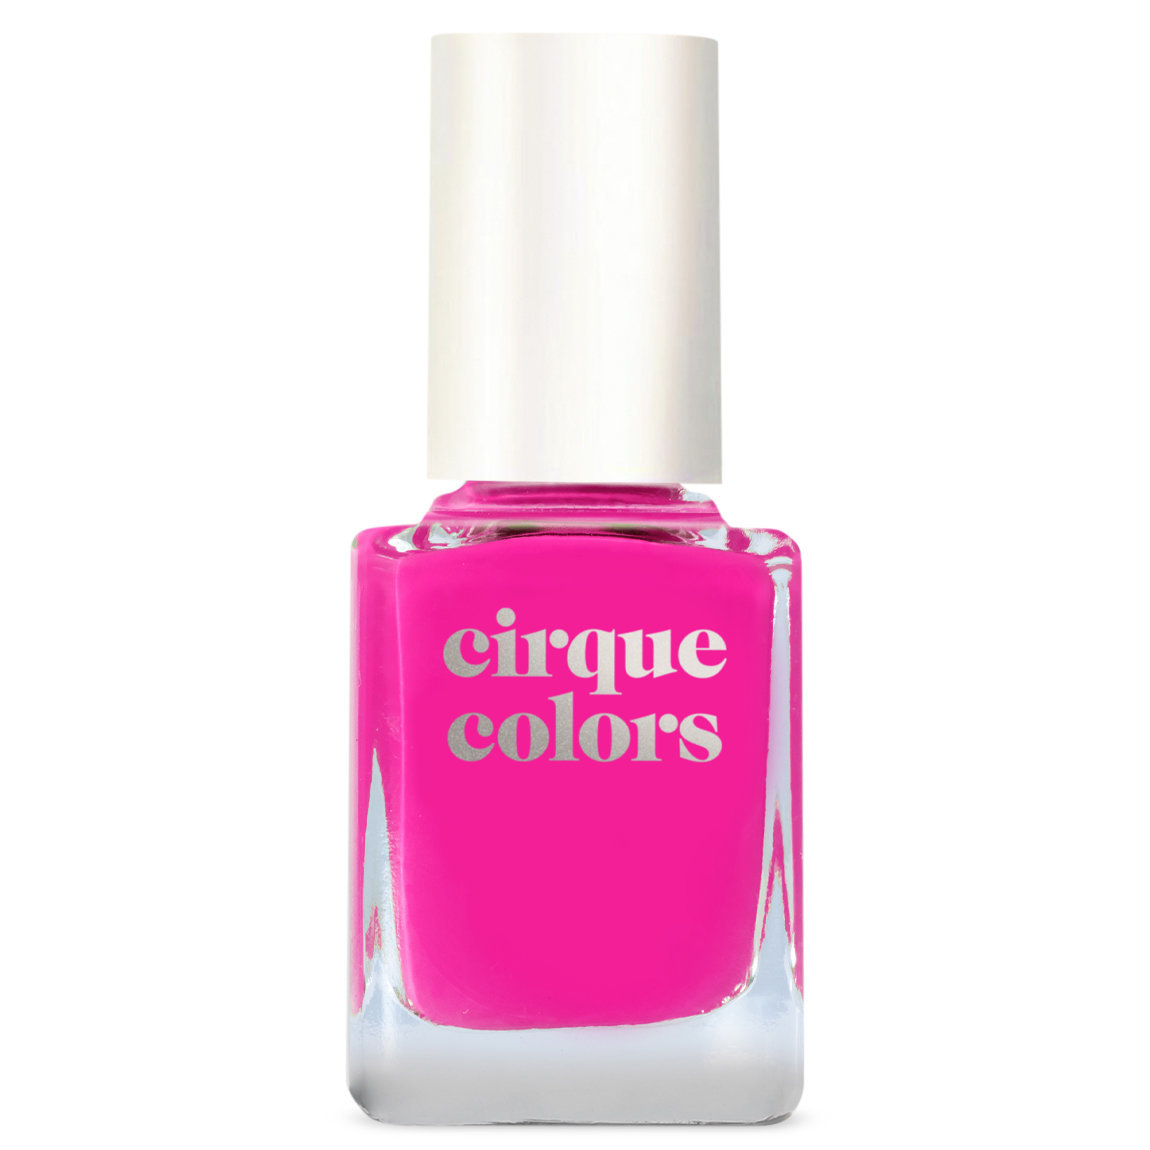 Cirque Colors Creme Nail Polish Gossip alternative view 1 - product swatch.